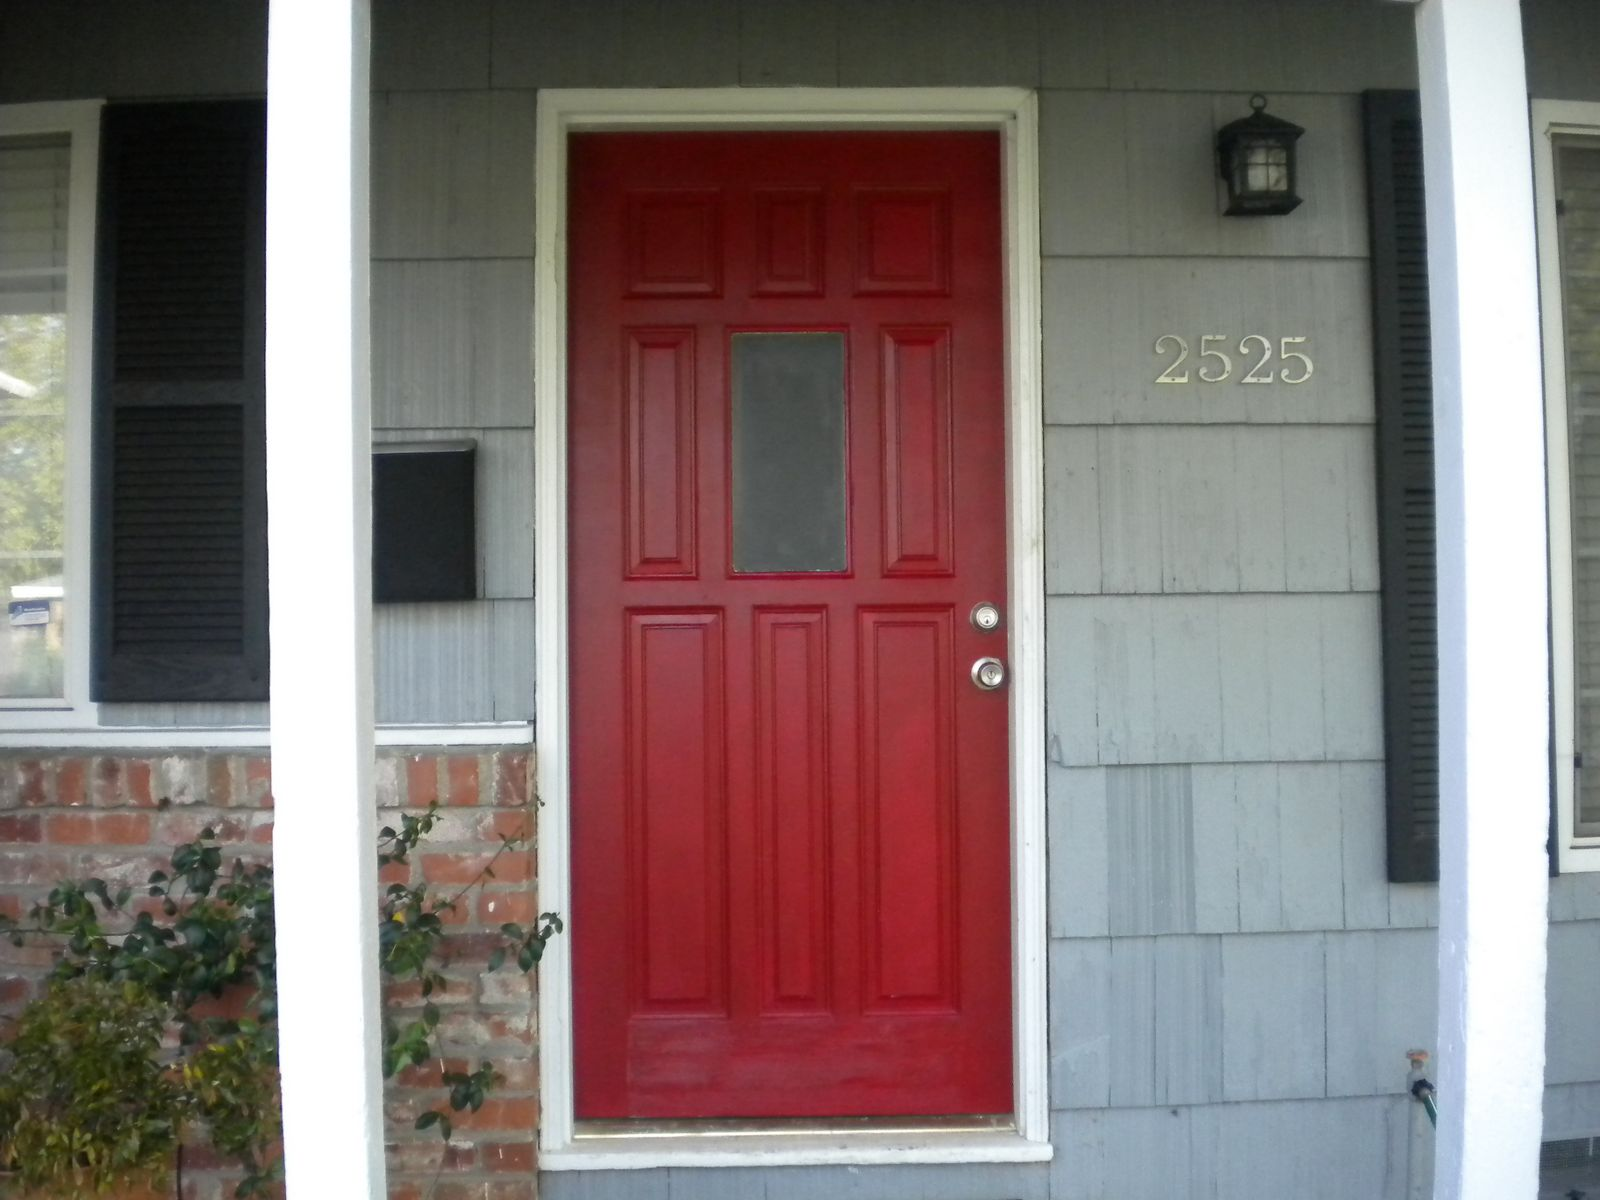 1200 #842F32 Posh Red { Our Front Door Updated } Home Depot Center picture/photo Front Doors Pictures 40791600